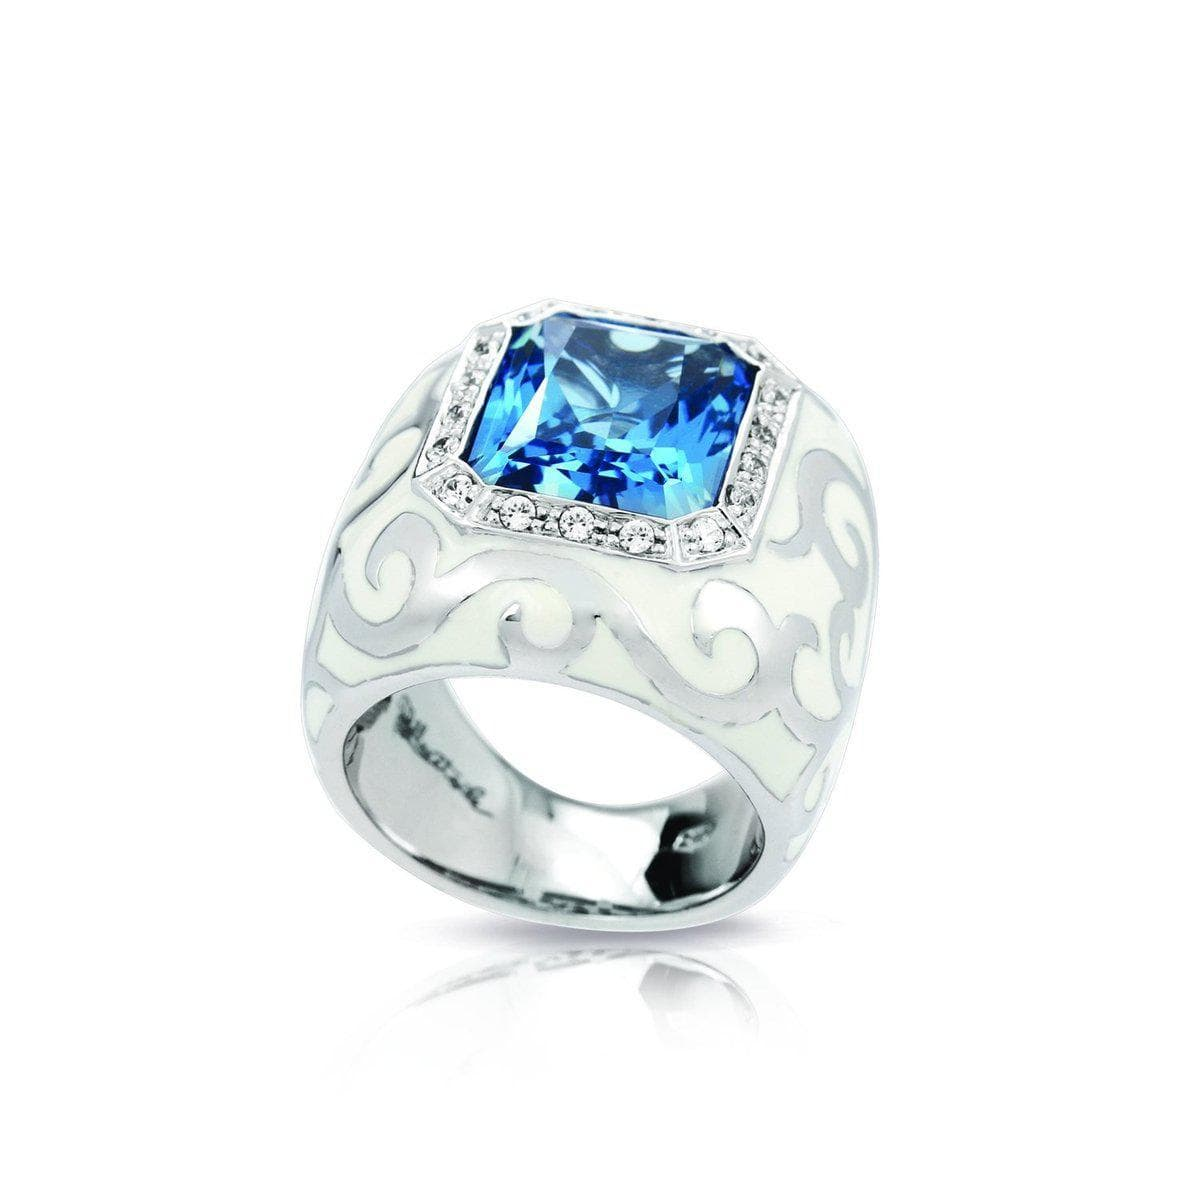 Royale Stone White and Aquamarine Ring-Belle Etoile-Renee Taylor Gallery